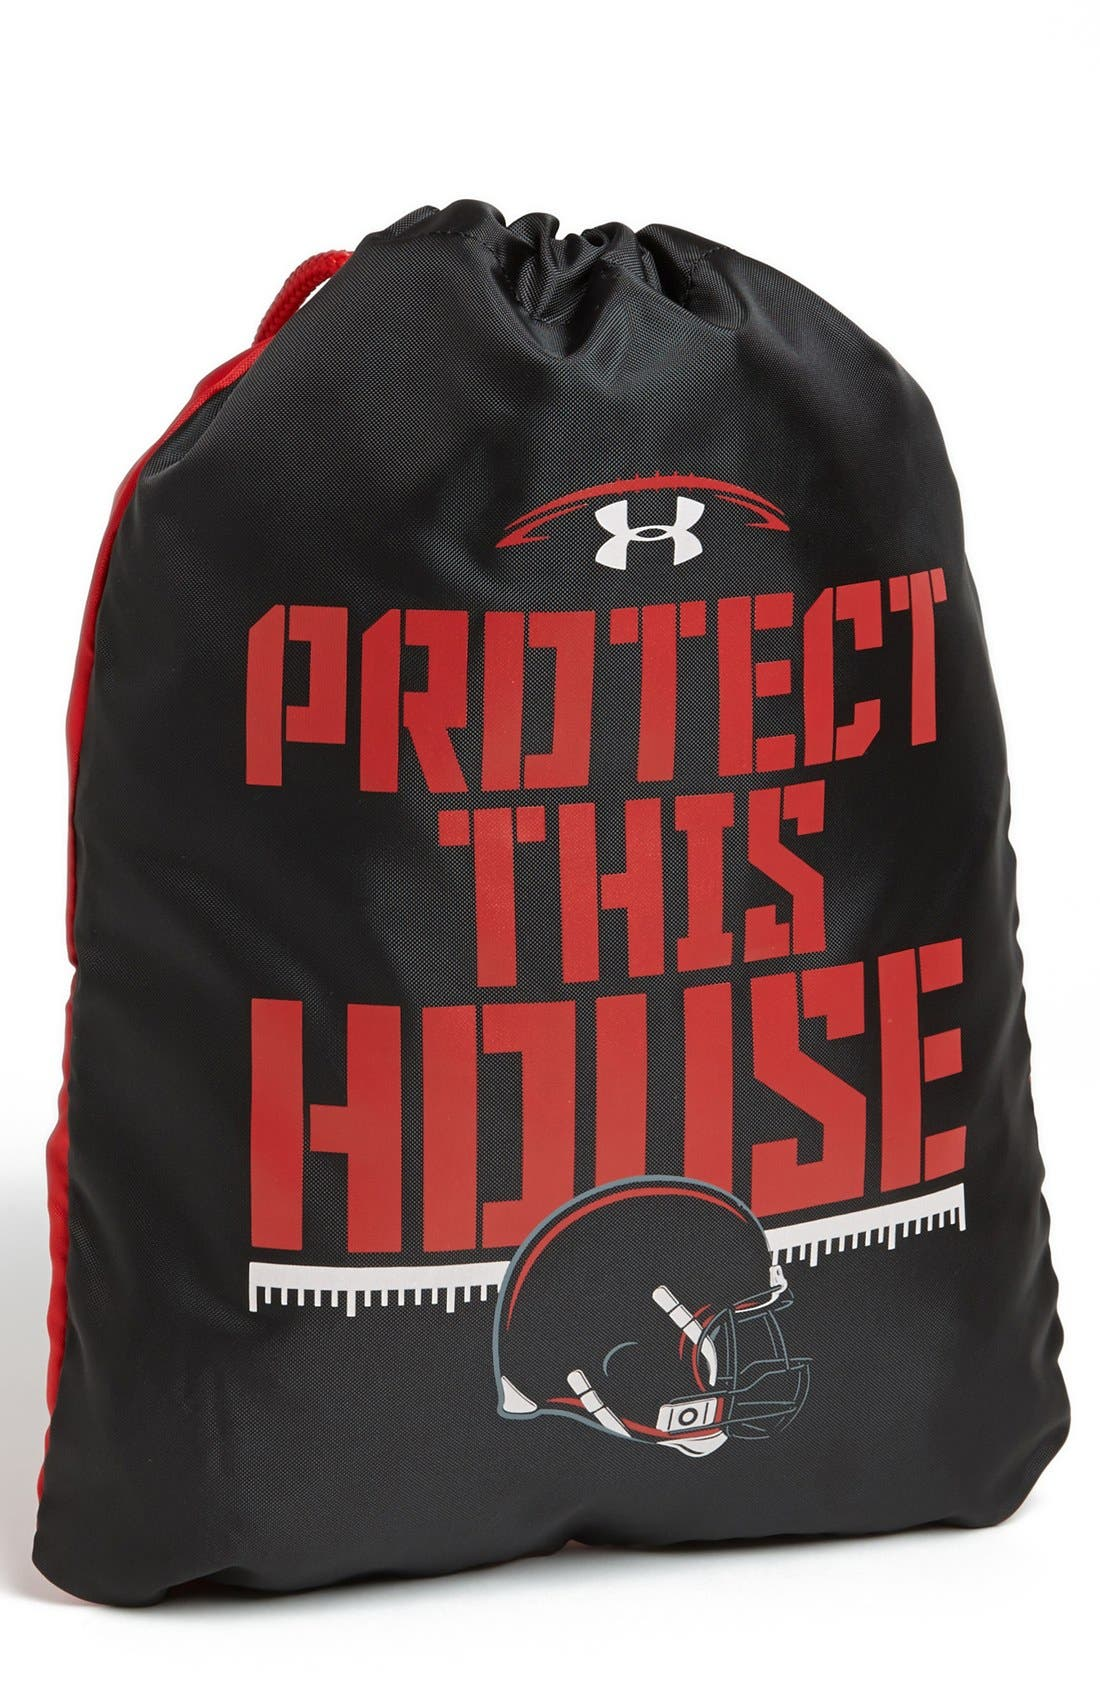 Main Image - Under Armour 'Ozzie' Drawstring Backpack (Boys)